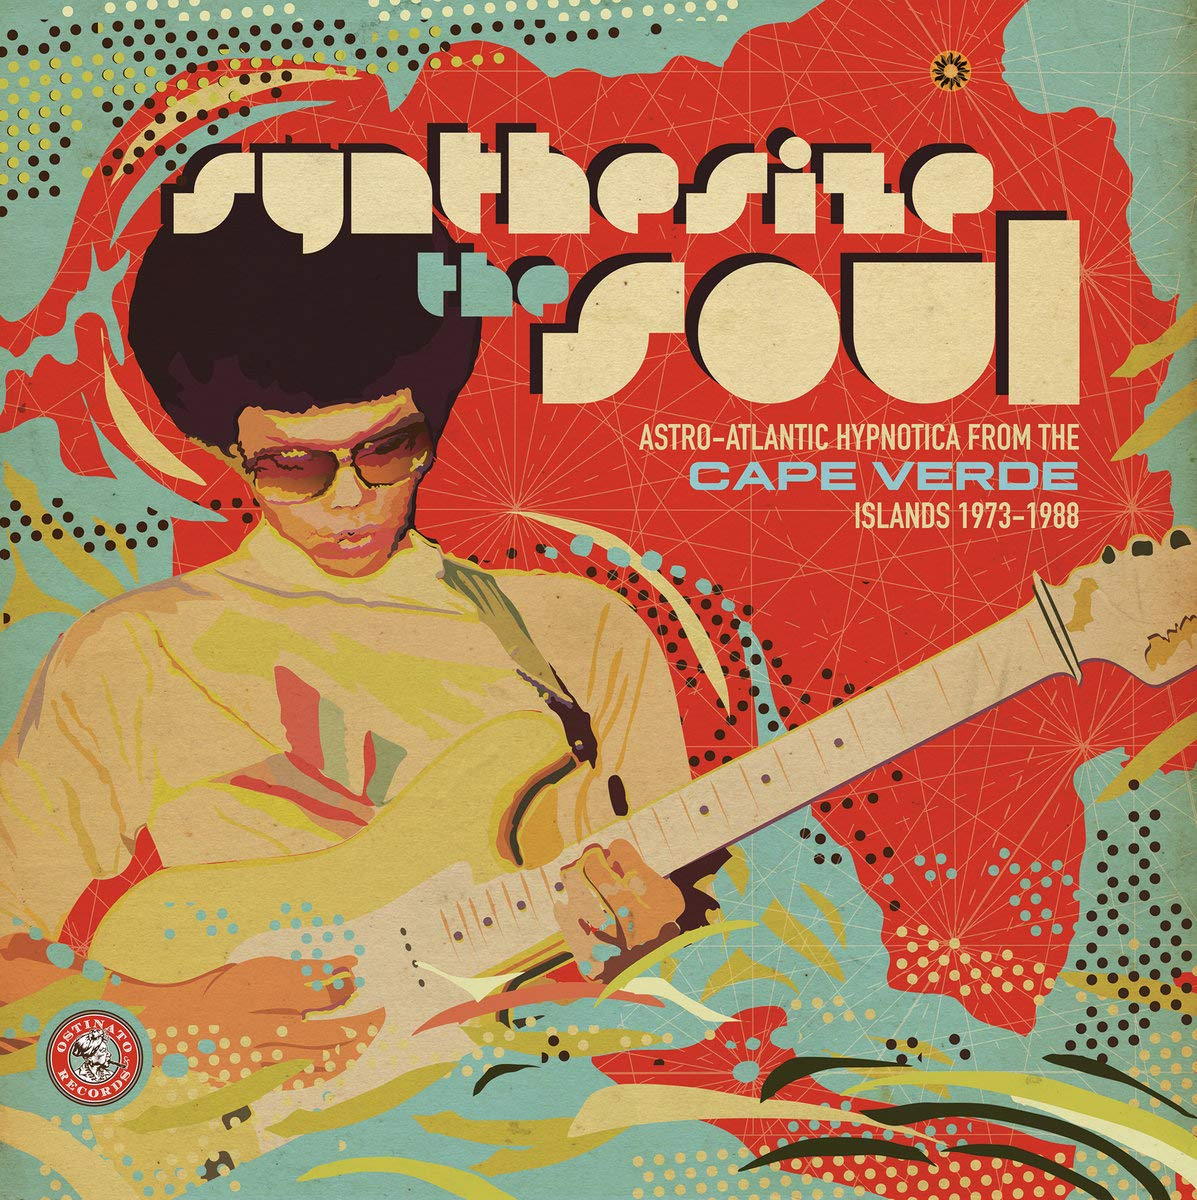 SYNTHESIZE THE SOUL: ASTRO-ATLANTIC HYPNOTICA FROM THE CAPE VERDE ISLANDS 1973 - 1988 by OSTINATO RECORDS